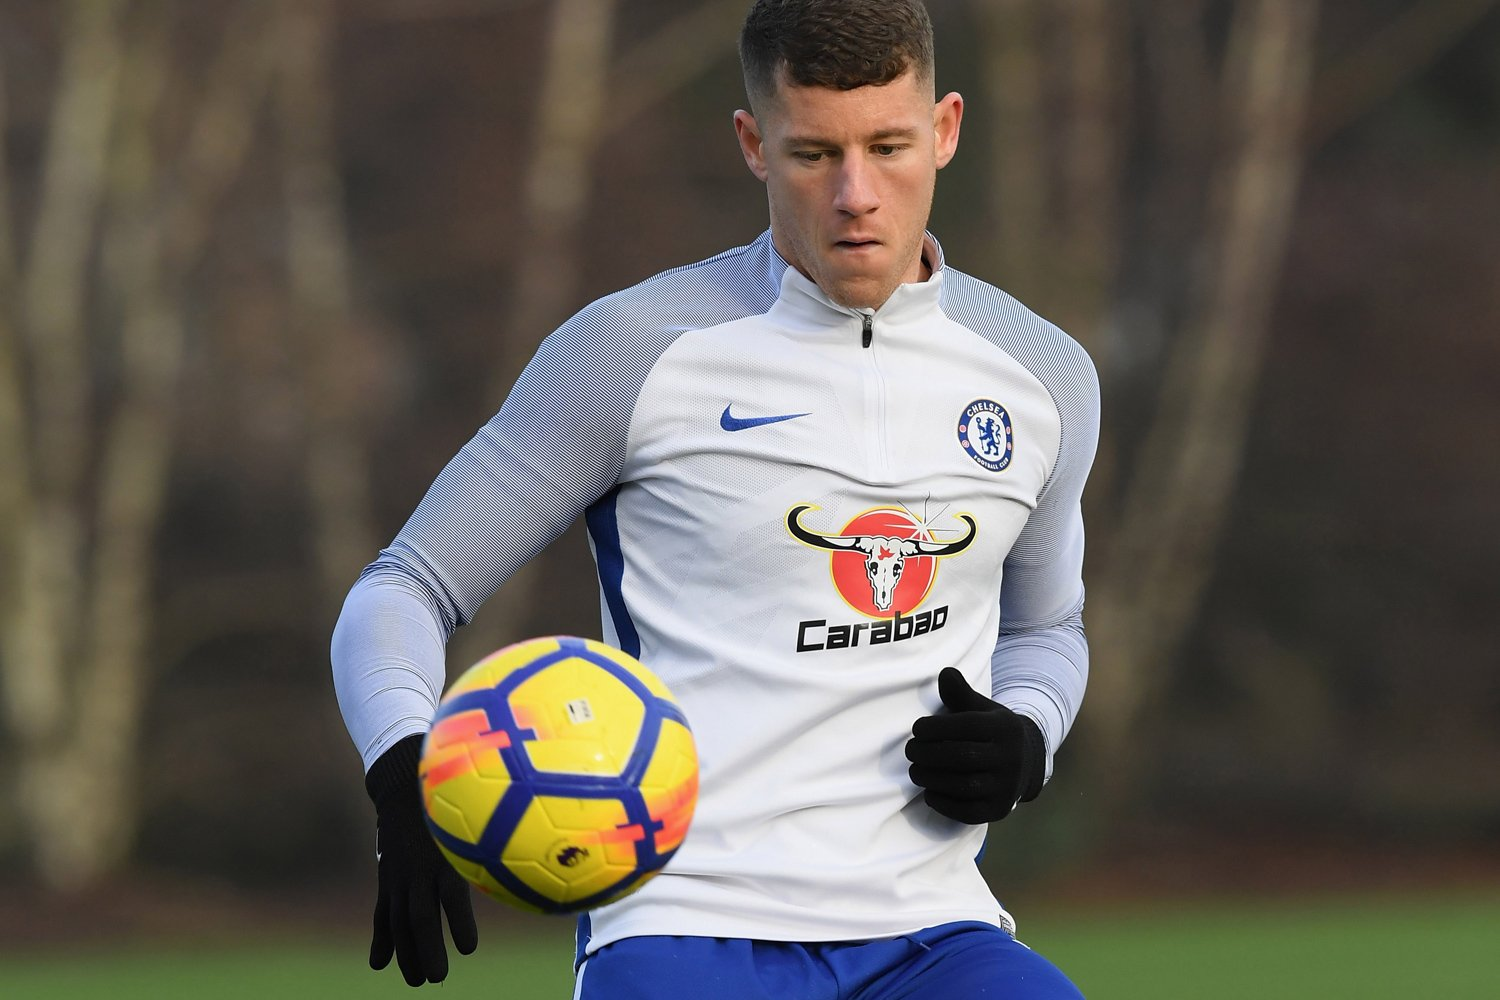 Ross Barkley has struggled for consistency at Chelsea